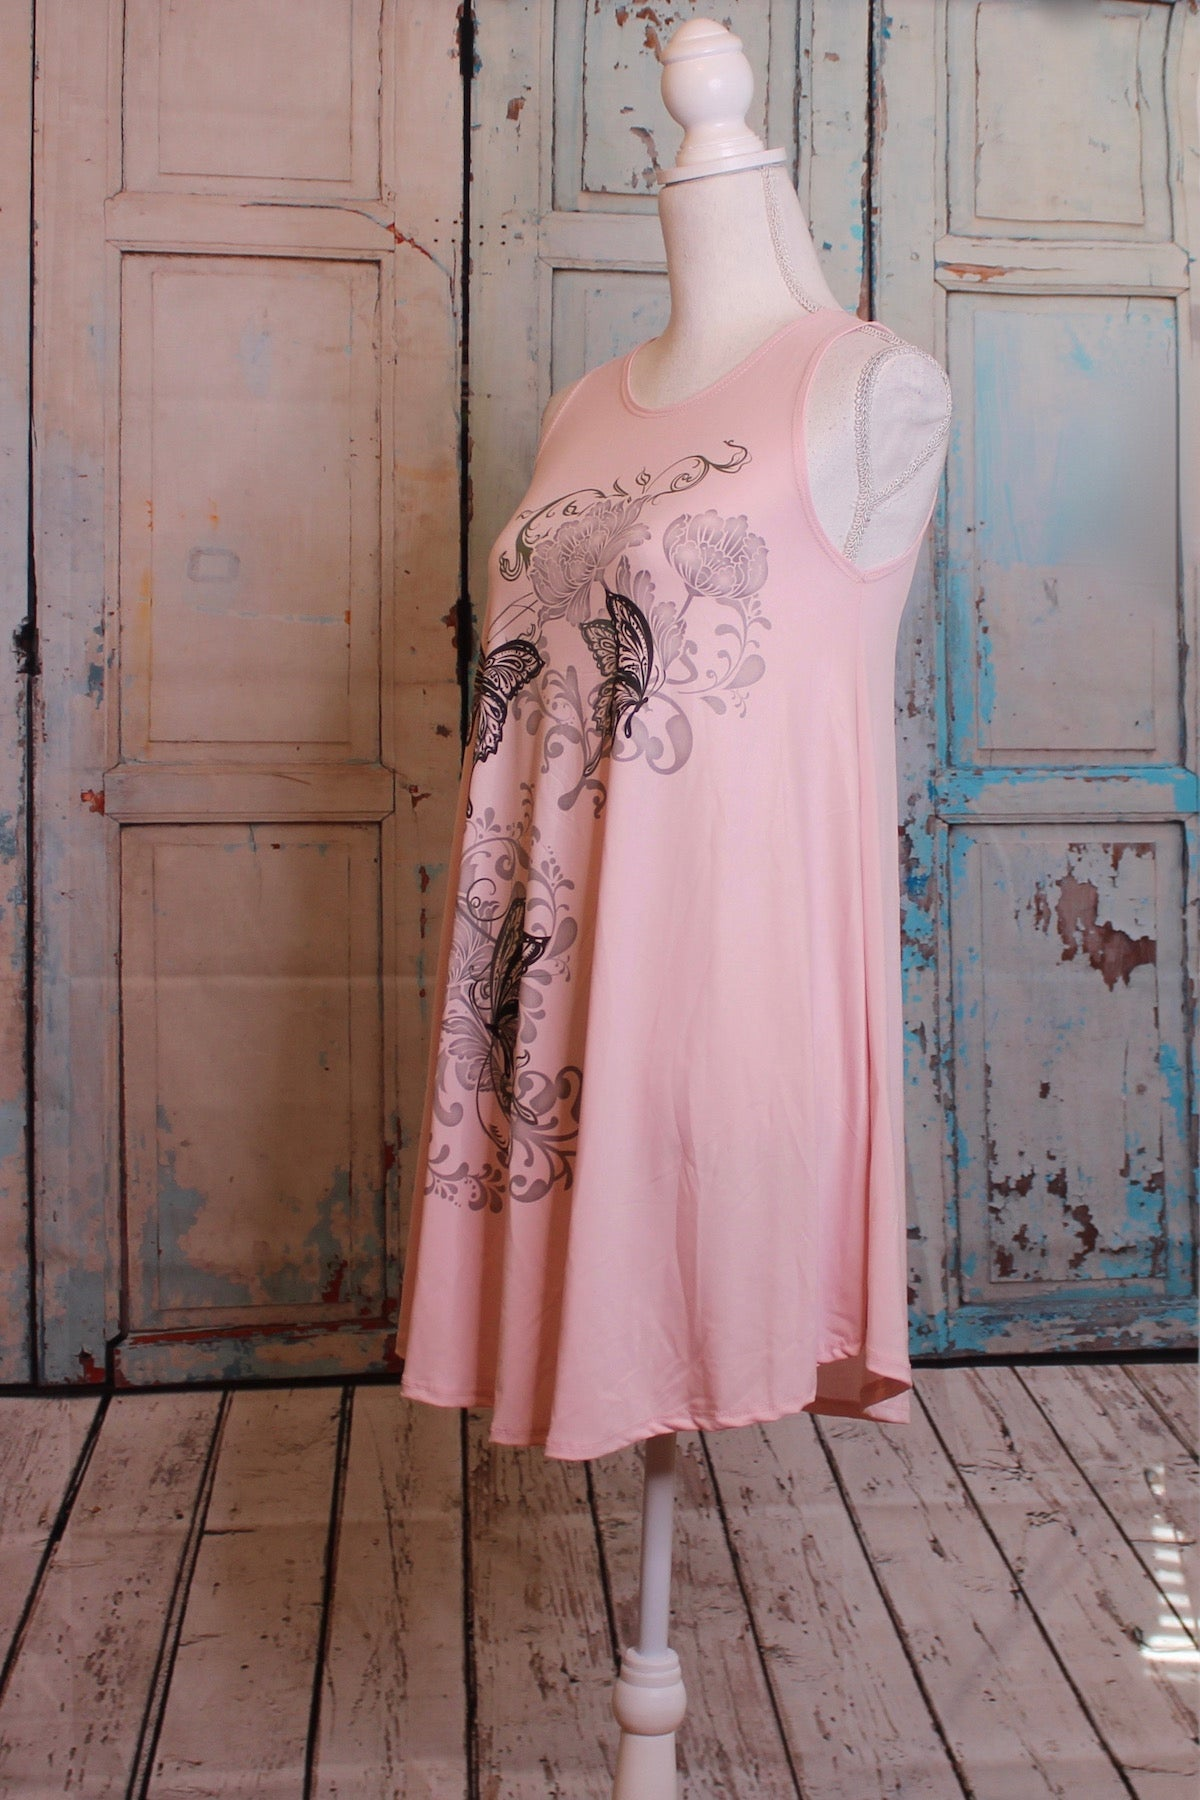 'Butterfly Kisses' Tunic